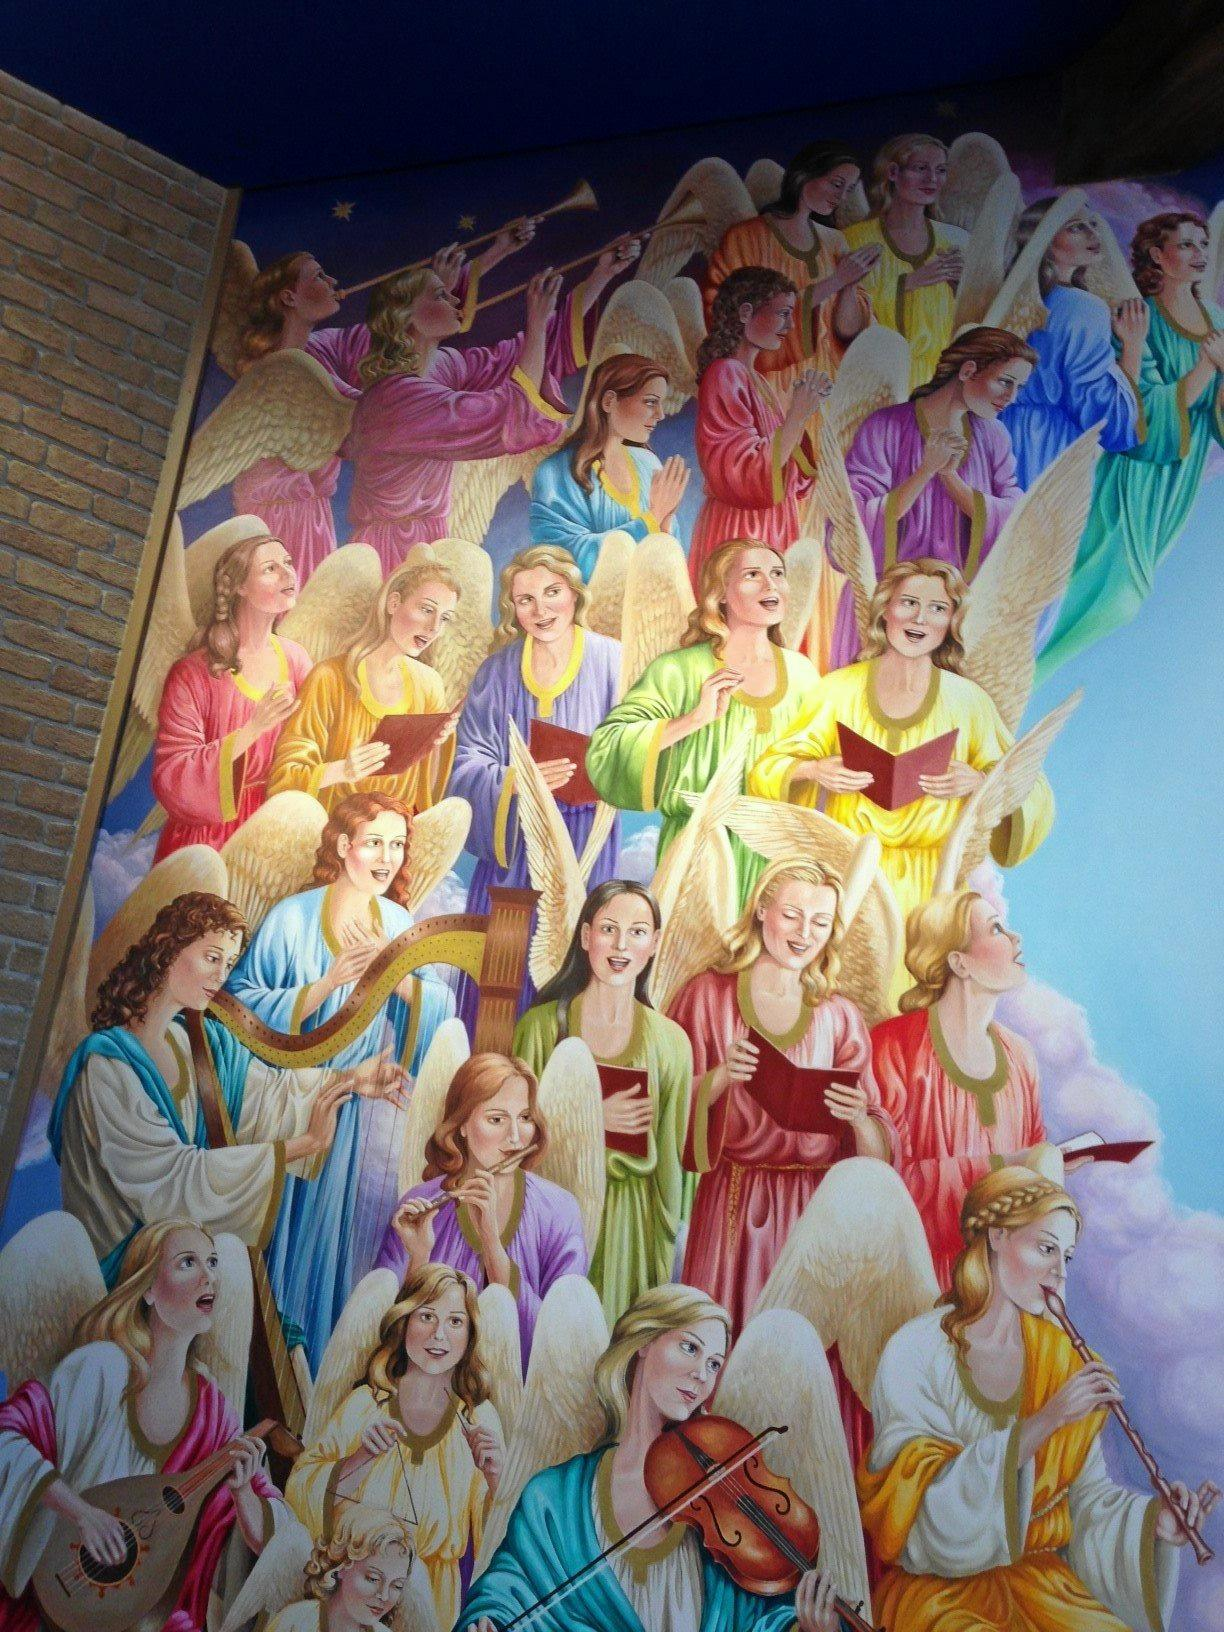 Choir of Angels mural.